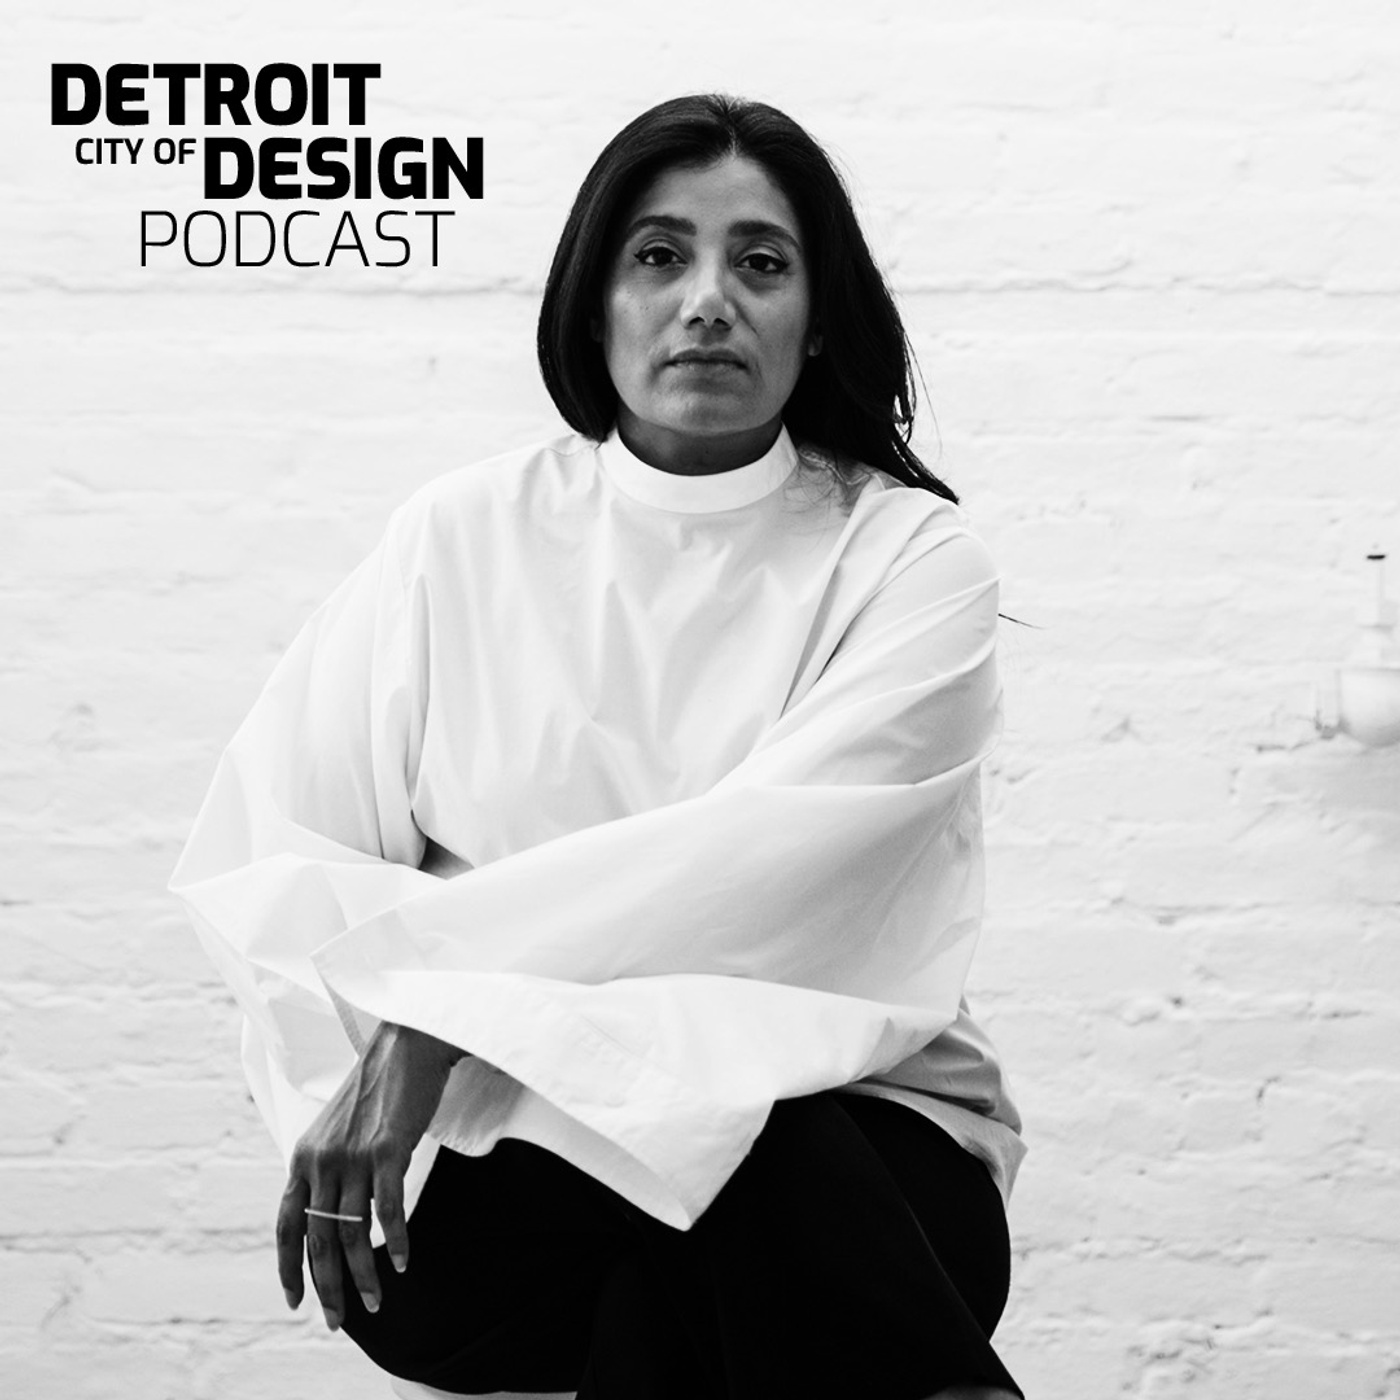 Suchi Reddy on Finding Wonder in Detroit and the Healing Power of Architecture